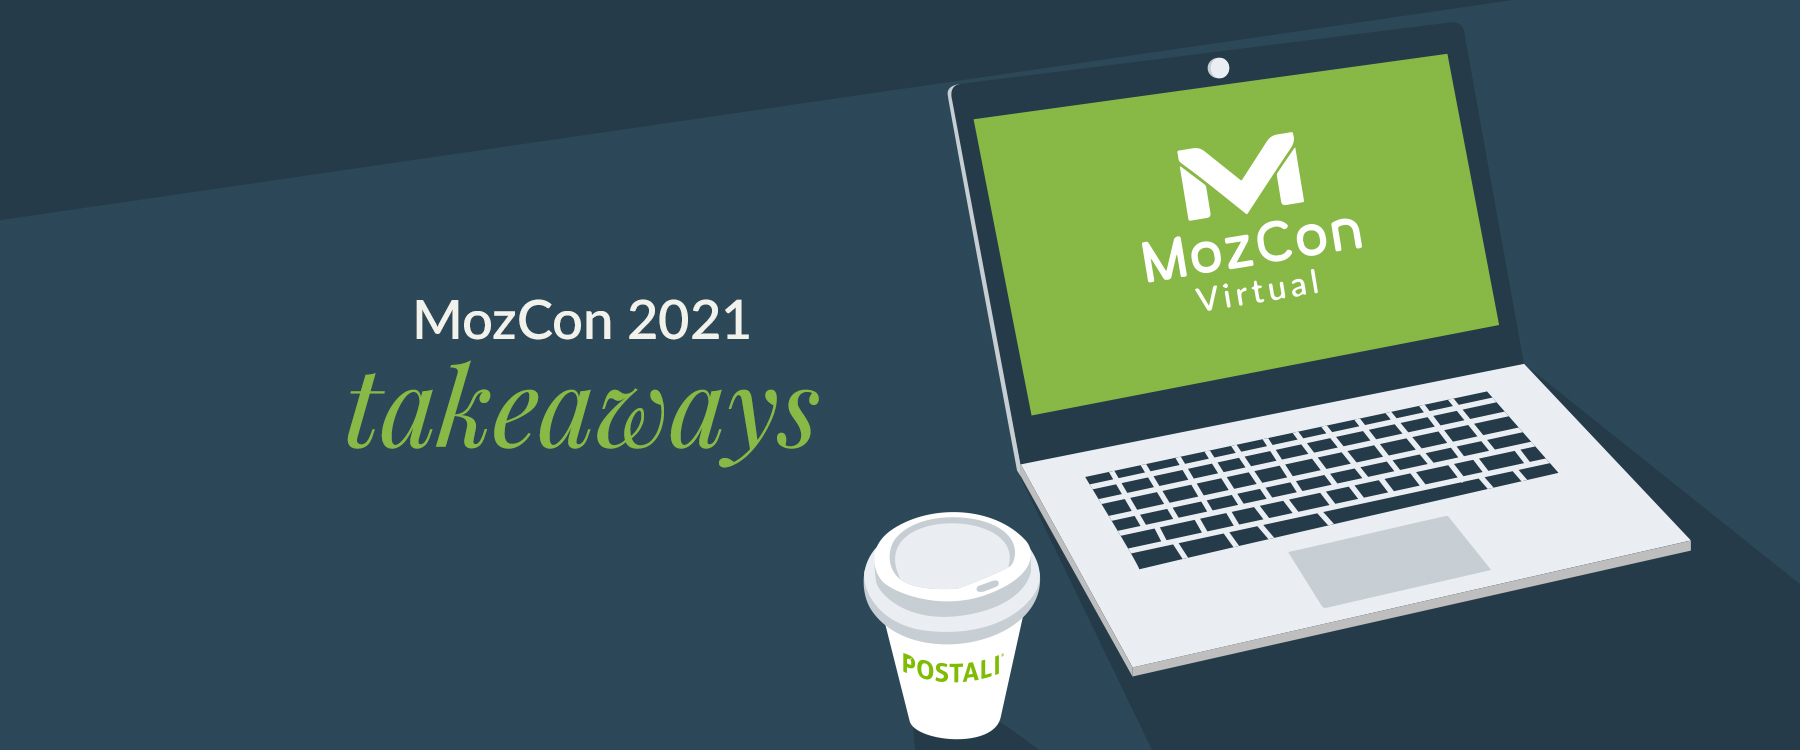 Coffee and laptop with mozcon logo on screen